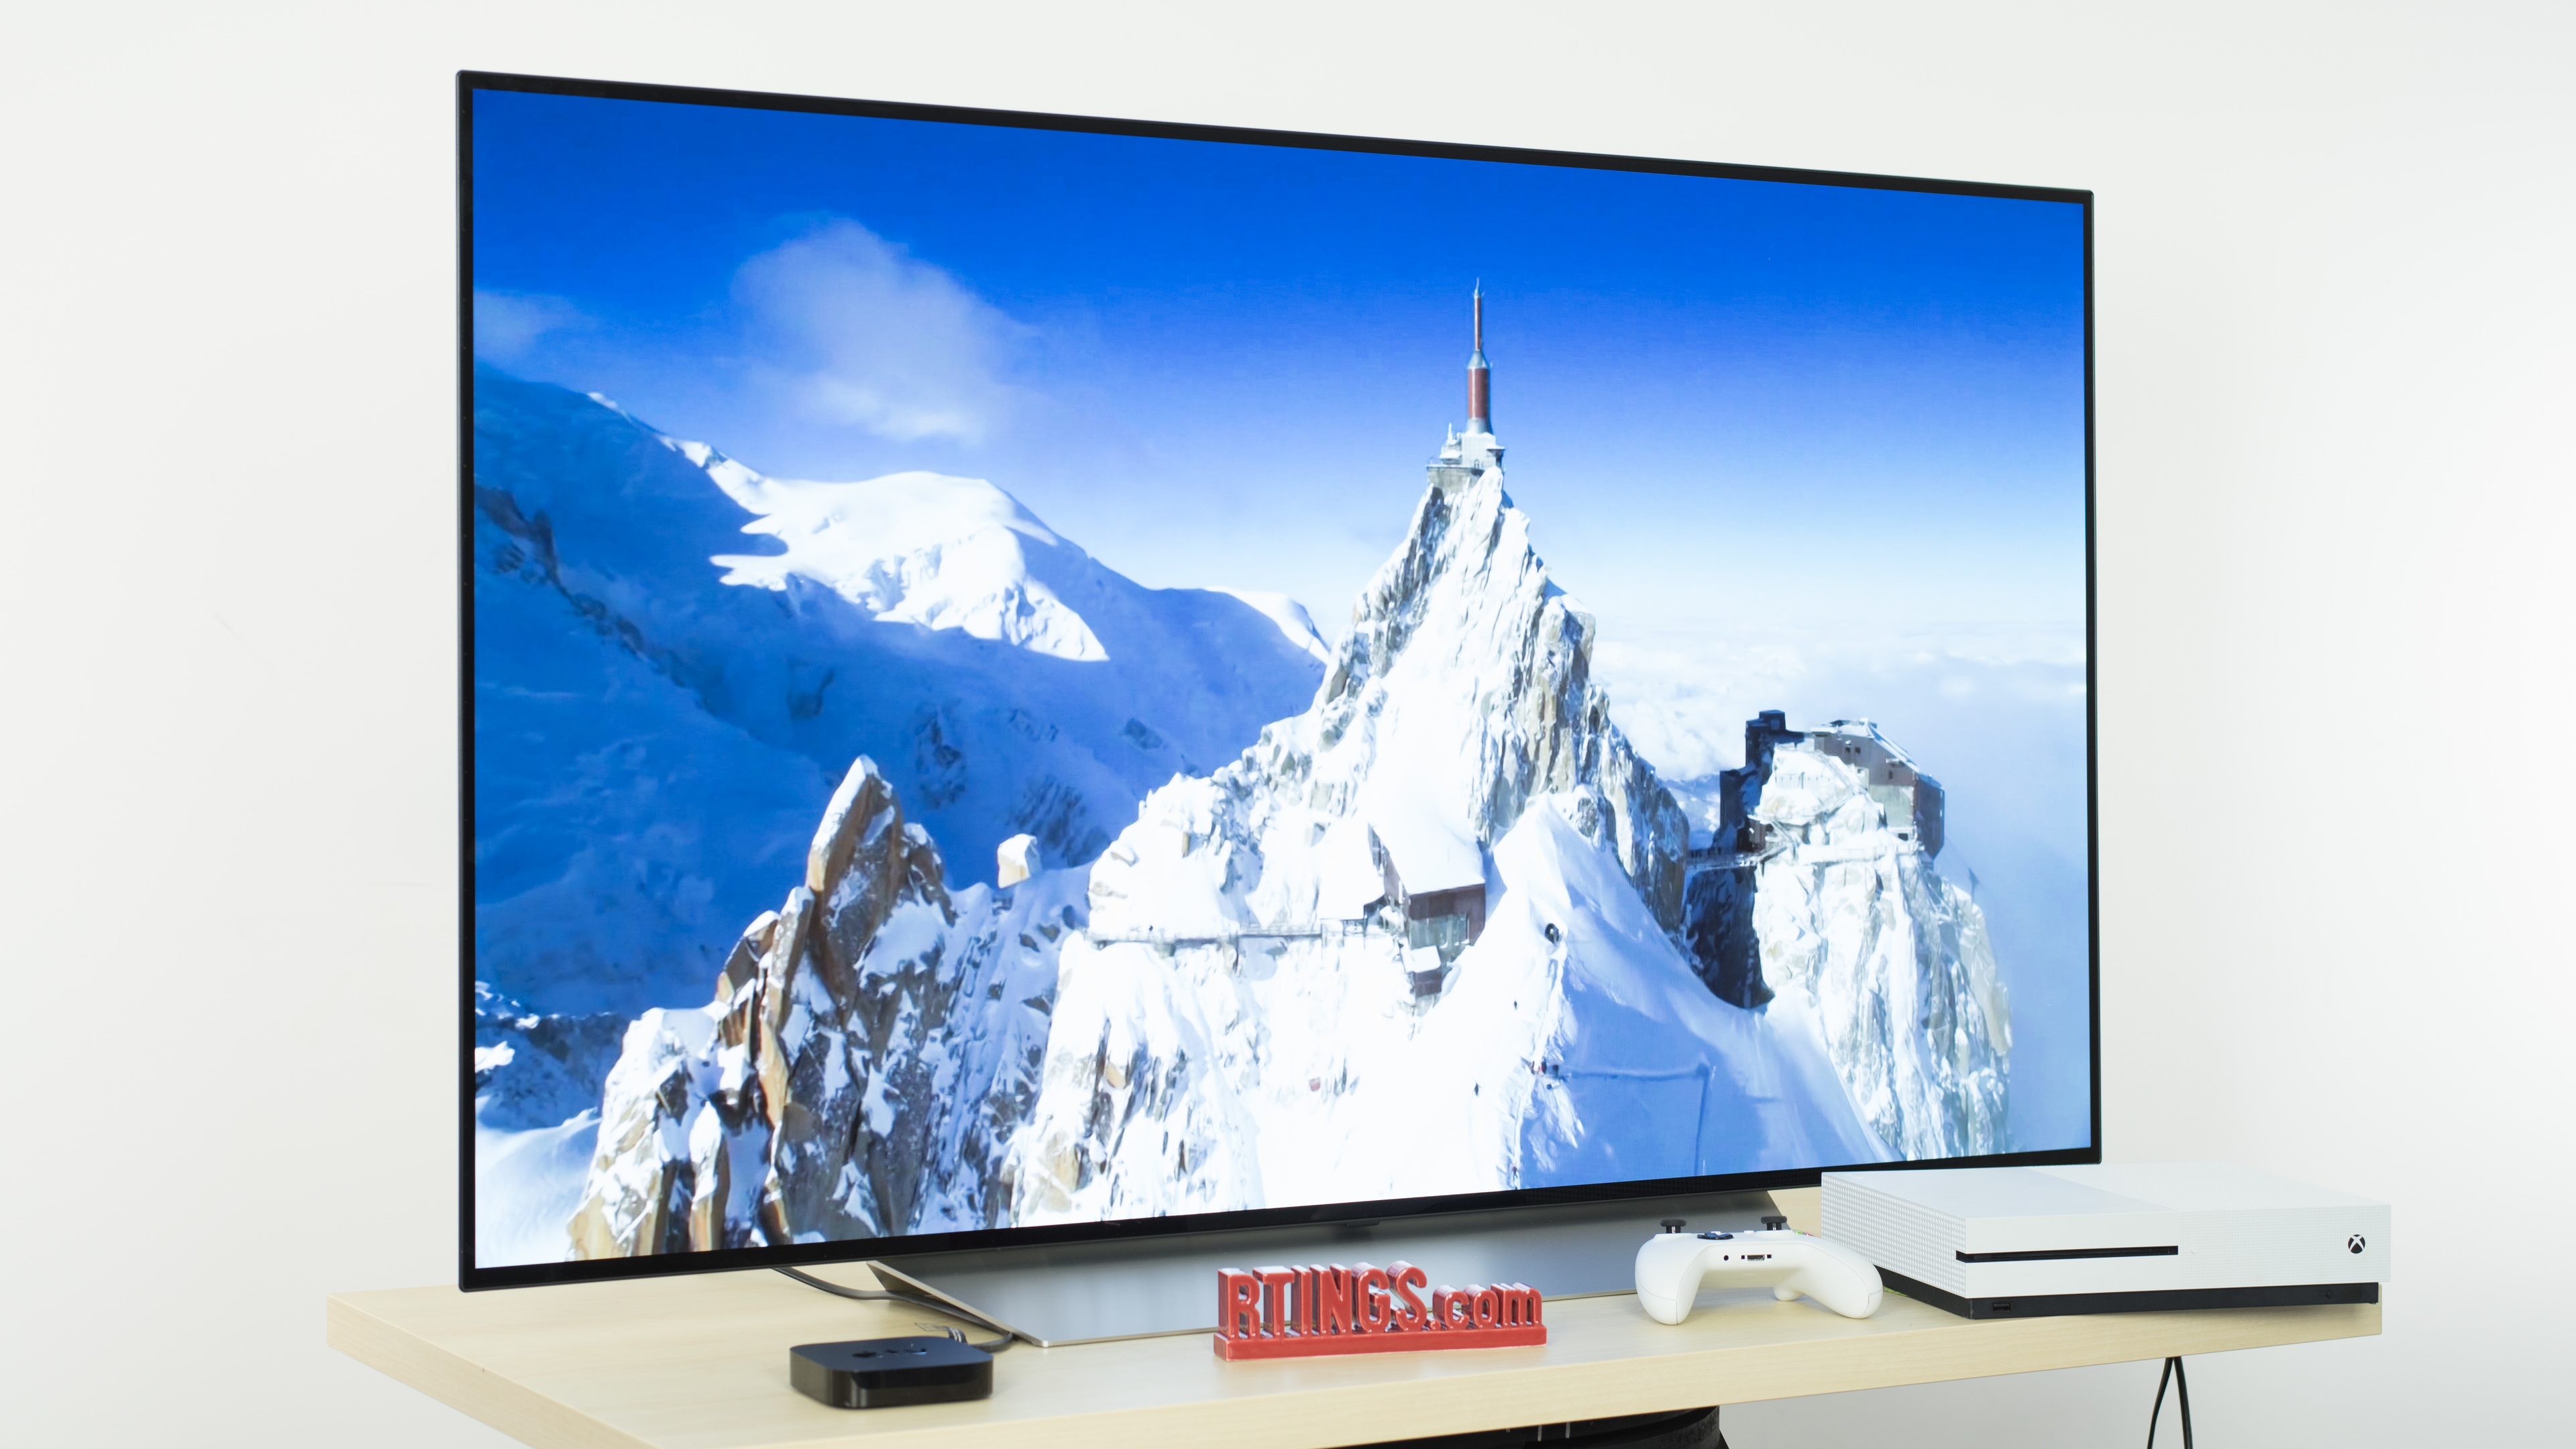 will 1080p play on 720p tv